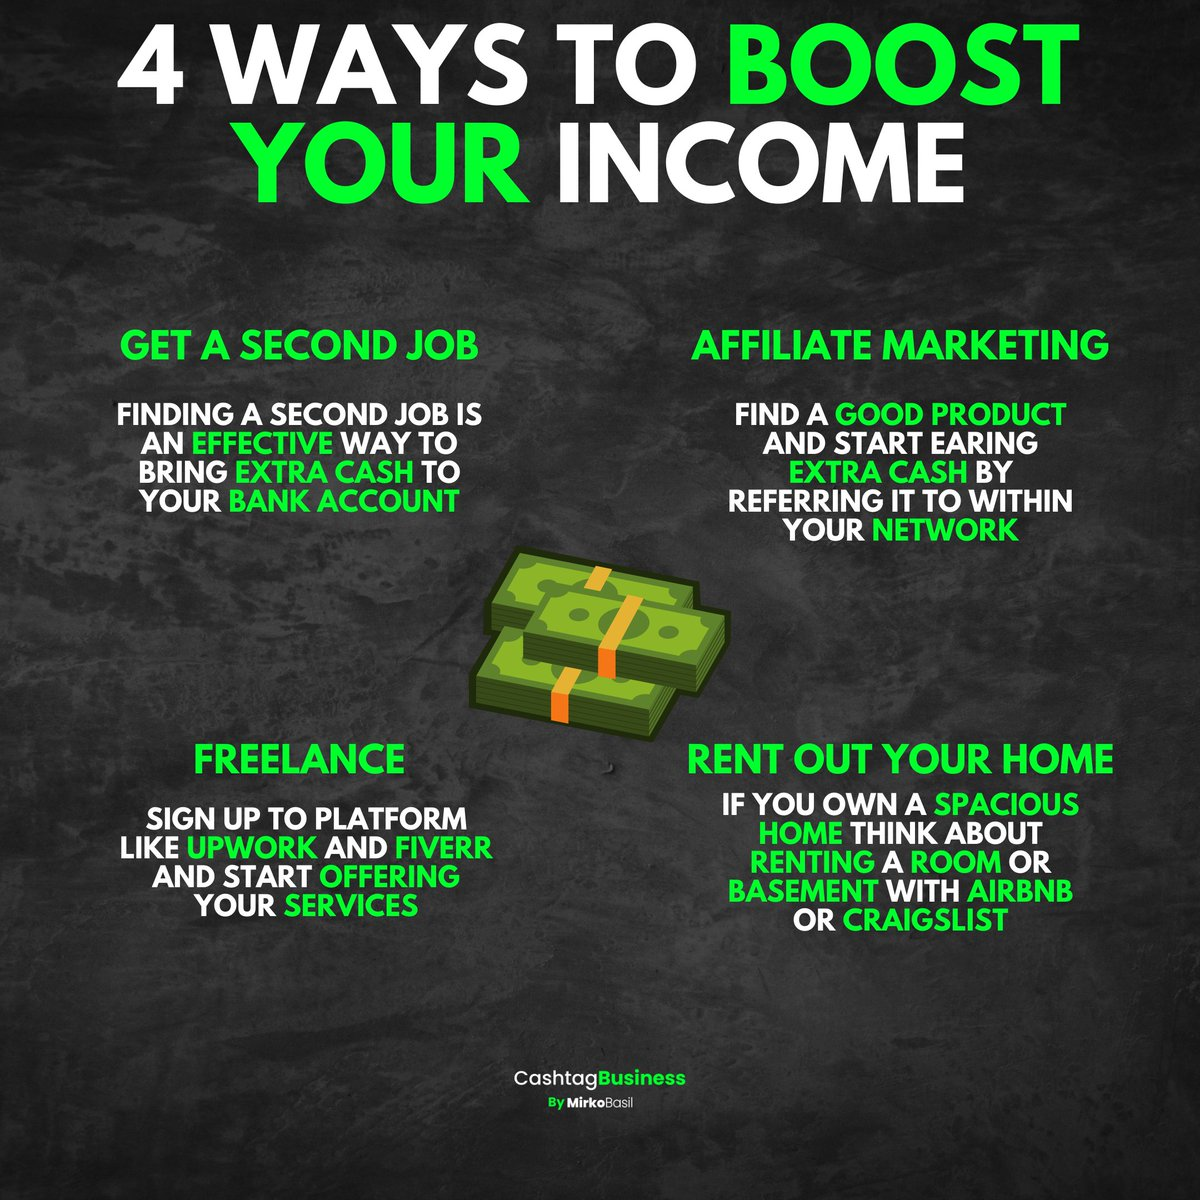 4 WAYS TO BOOST YOUR INCOME See more  #instagram #instagrambusiness #instagramflower #MondayMotivation #mondaythoughts #MondayMorning